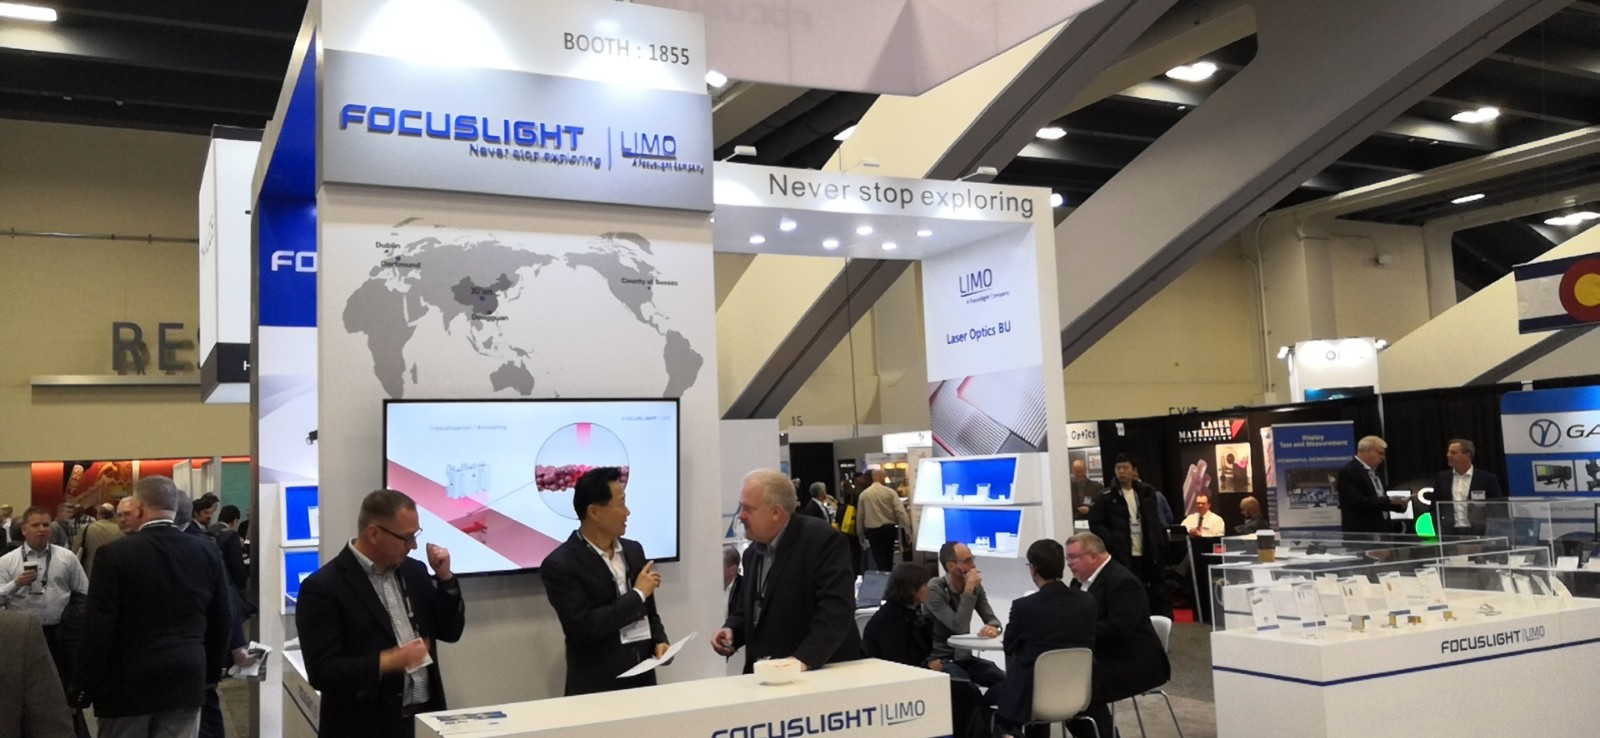 Focuslight Exhibited at Photonics West in San Francisco, USA